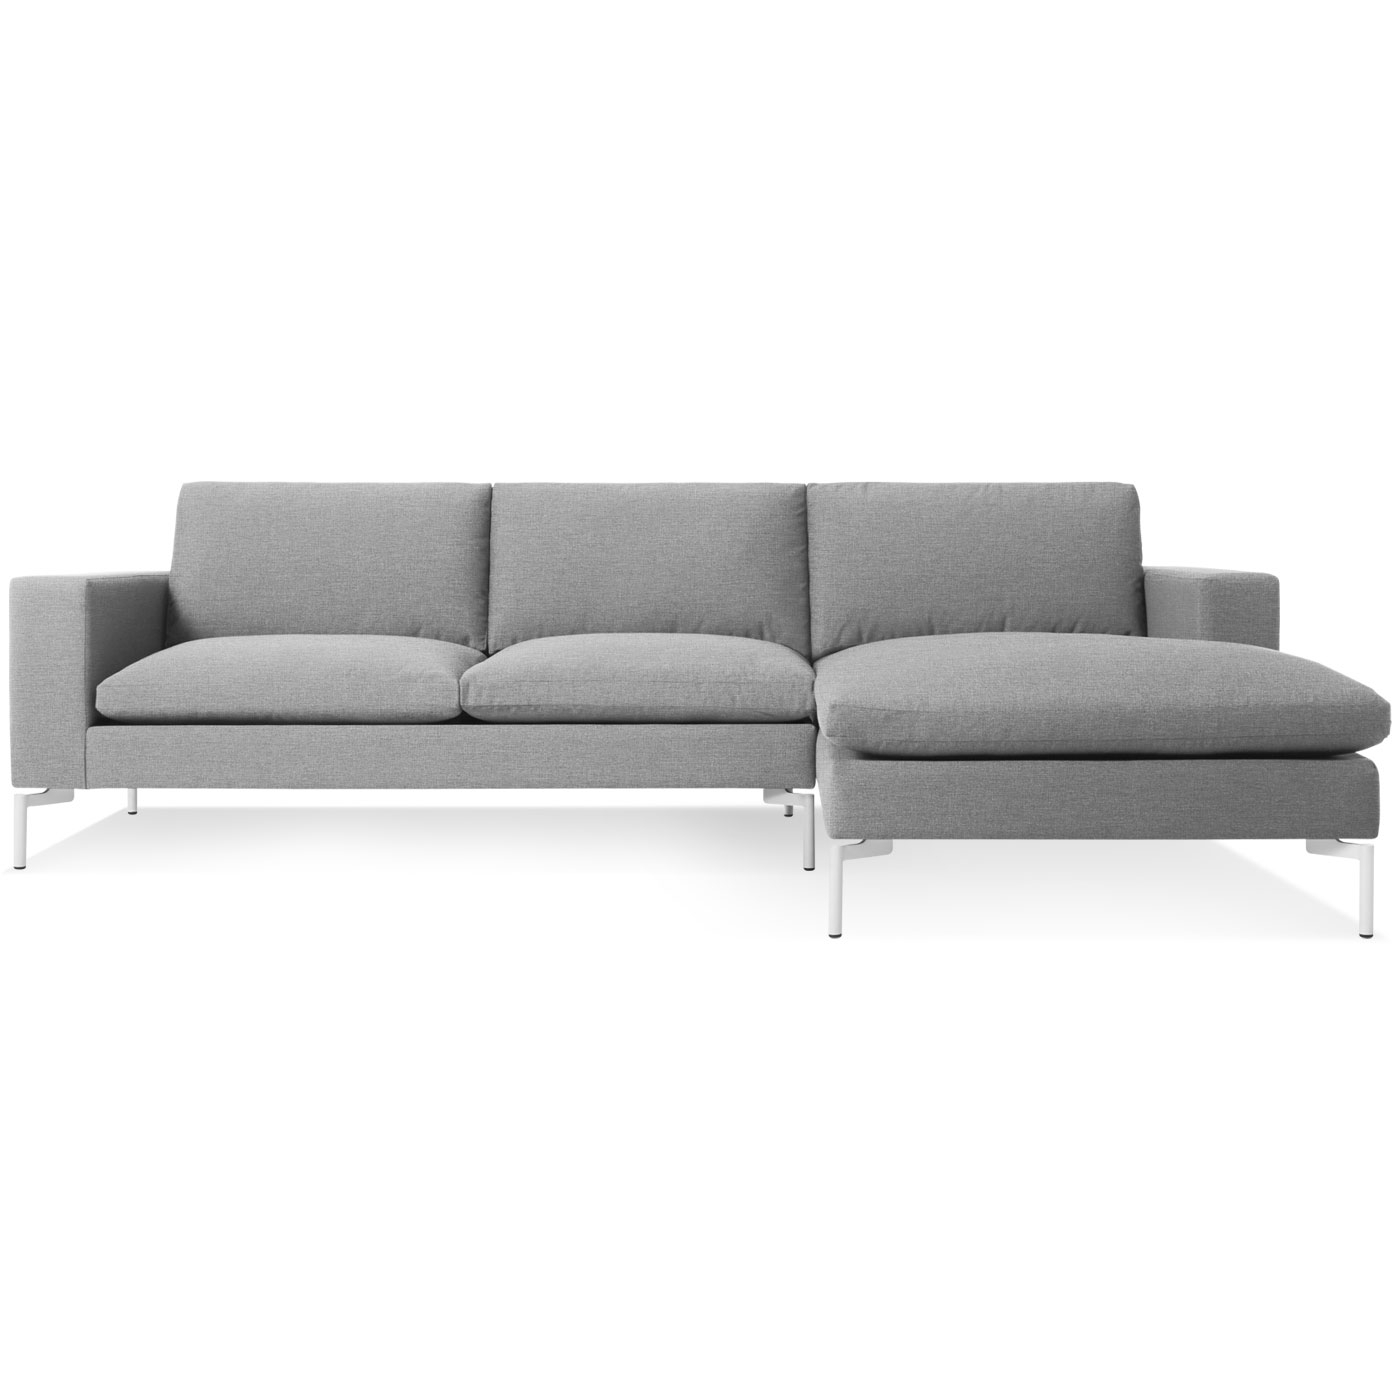 New Standard Modern Chaise Sofa – Left Chaise (View 13 of 15)